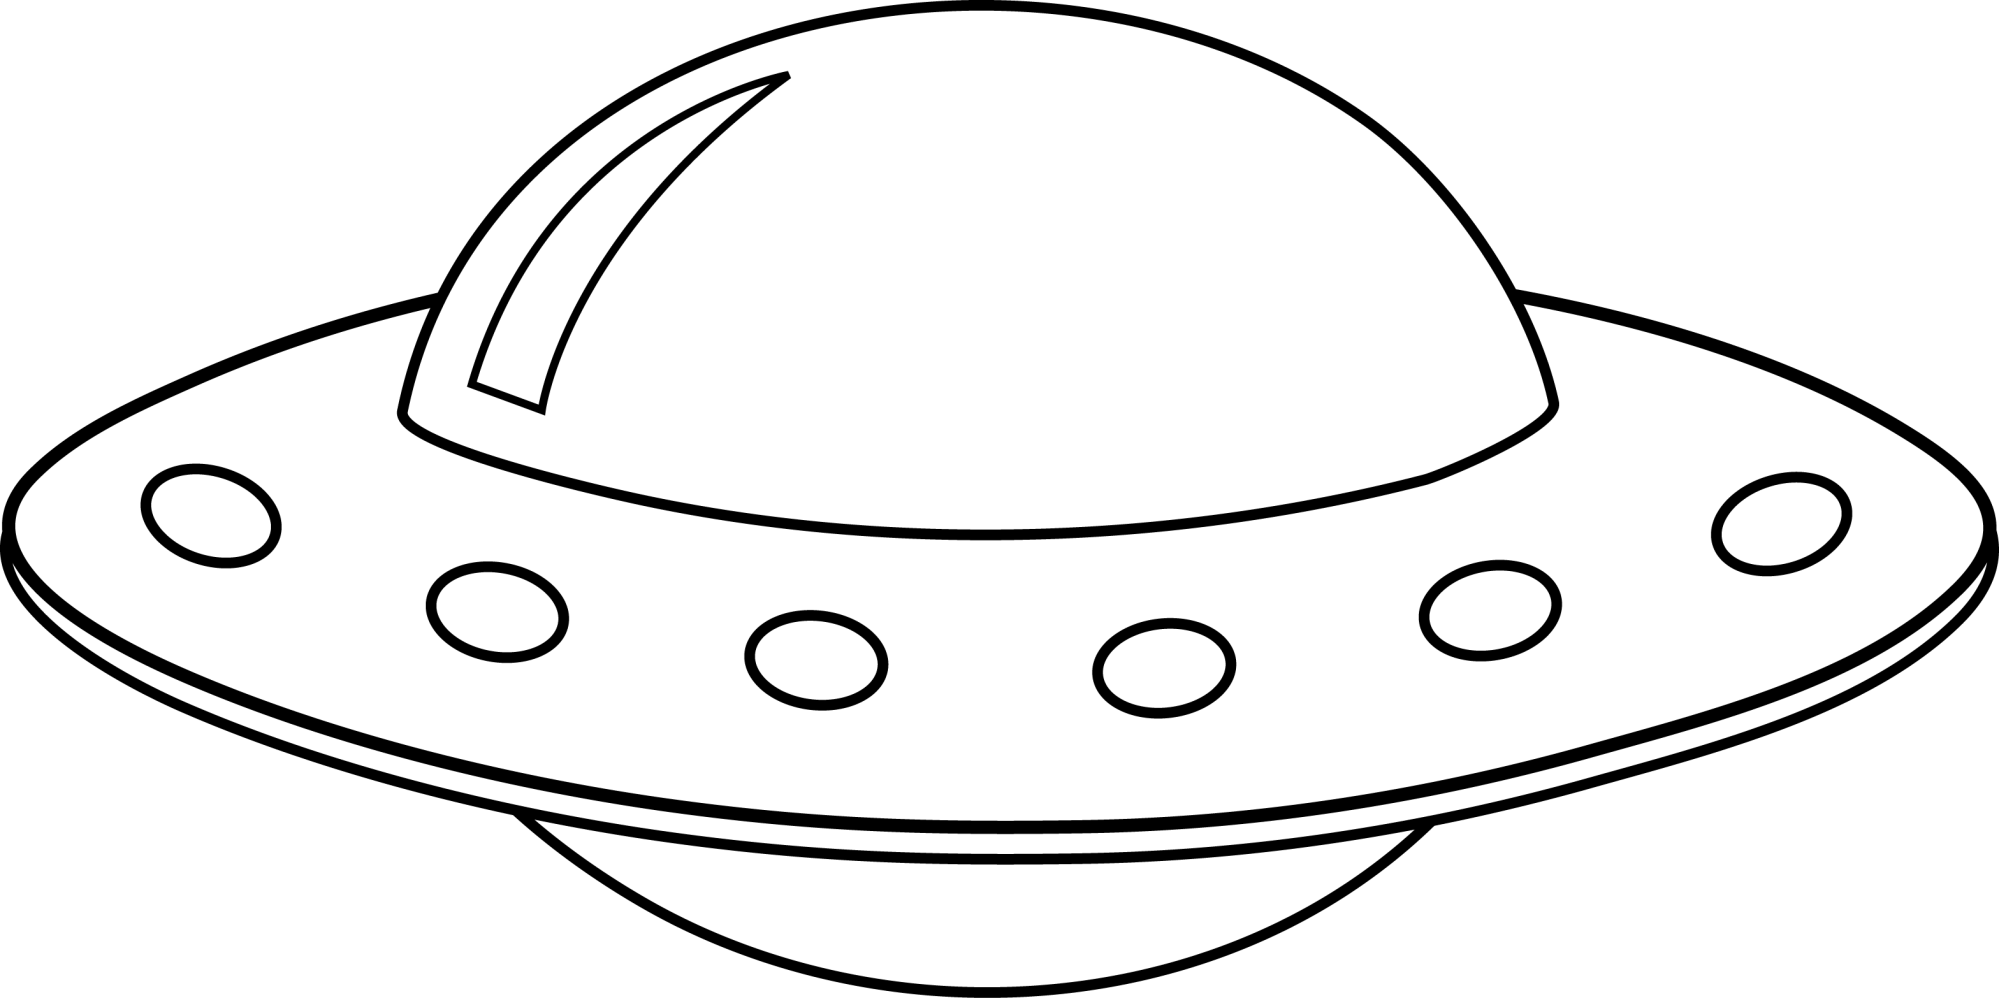 hight resolution of image of spaceship clipart